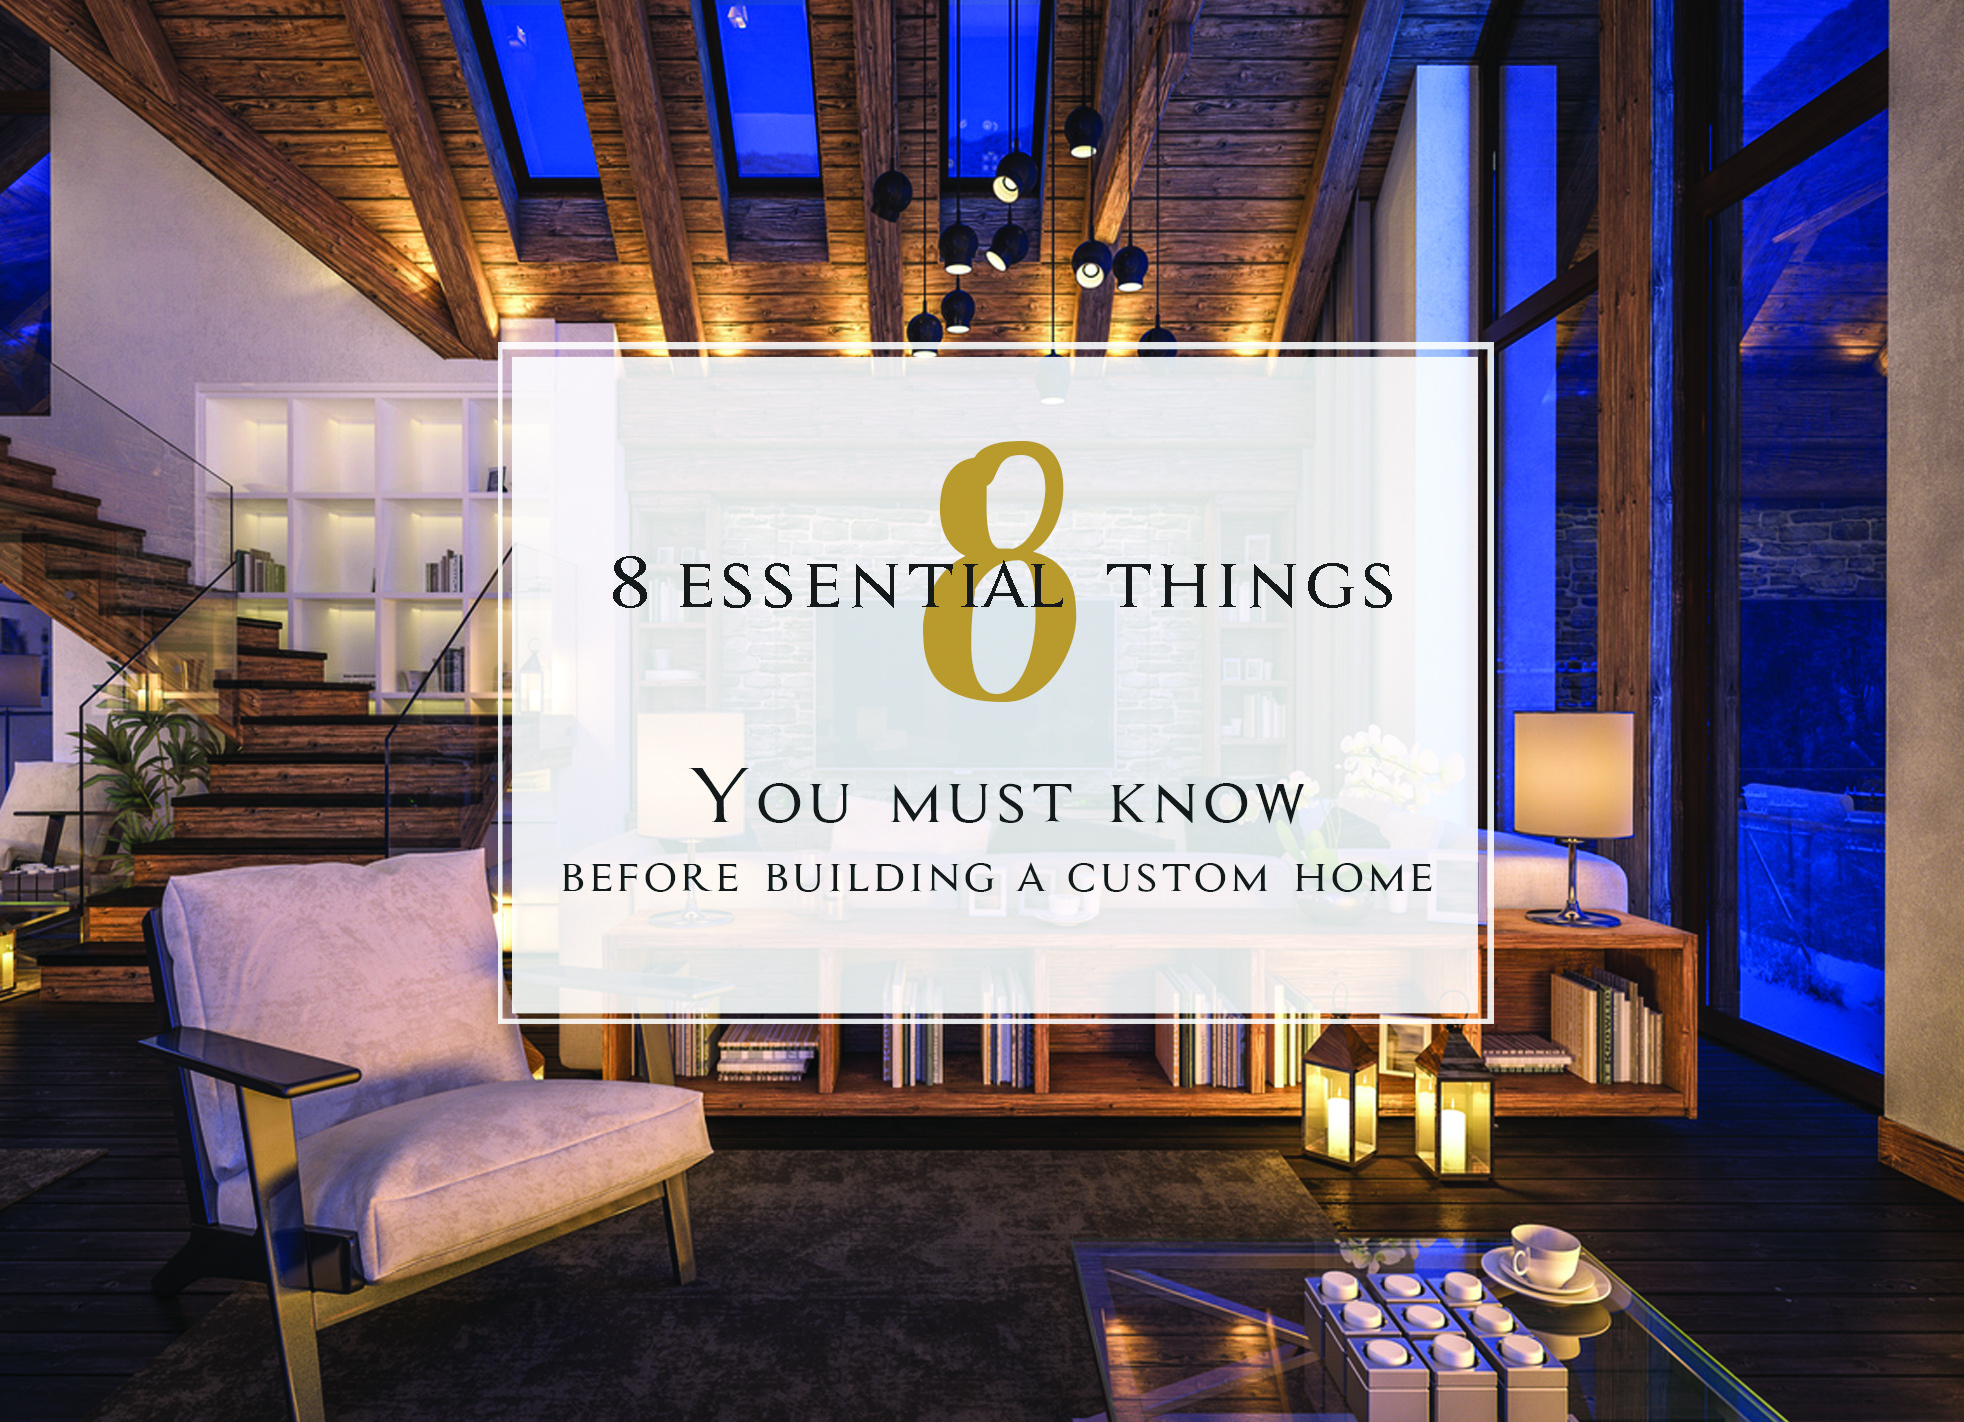 Merino experience, custom design, custom home, design and build, luxury home, luxury home builder, best practice builder, MBA builder, HIA builder, green smart professional, builders in Macarthur, builders in Camden, builders in Bowral, Southern highland builders, building a home, top 10 builders, custom builders, local builder, architectural designed homes, Builders in Moss Vale, luxury design,